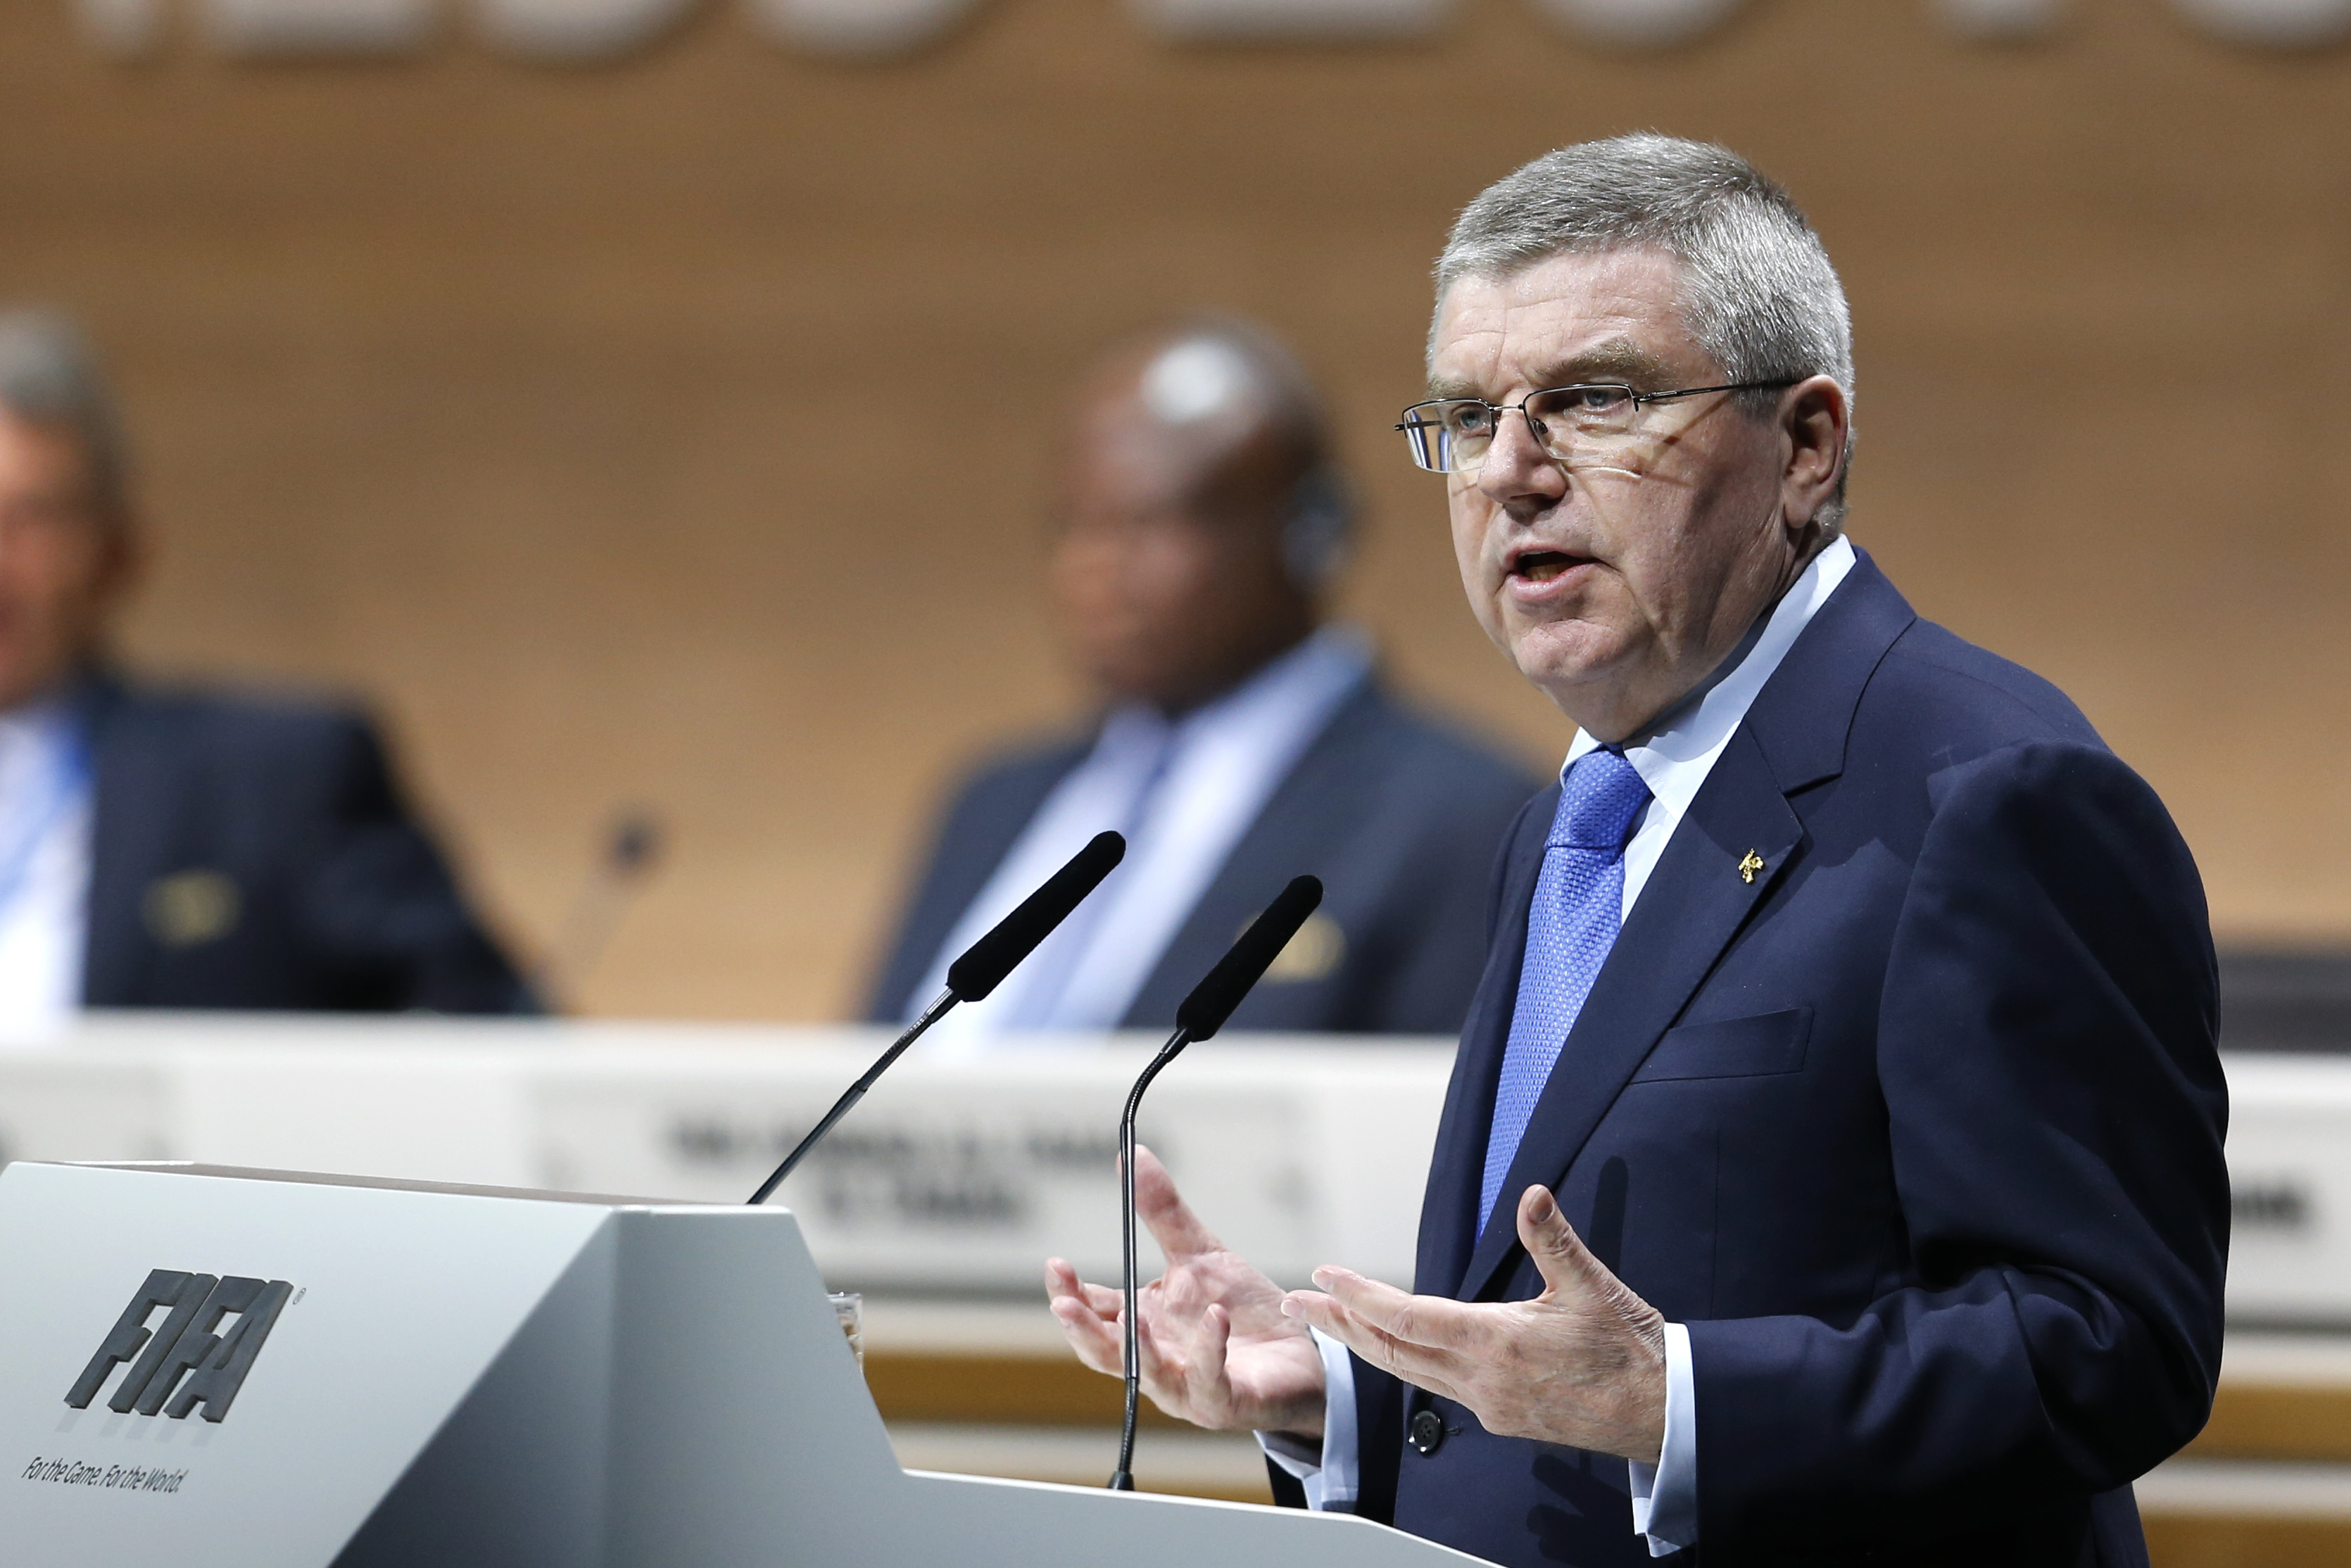 IOC President Thomas Bach speaks during the extraordinary FIFA congress in Zurich, Switzerland, Friday, Feb. 26, 2016. Delegates of the soccer  body FIFA meet to elect a new president. (AP Photo/Michael Probst)